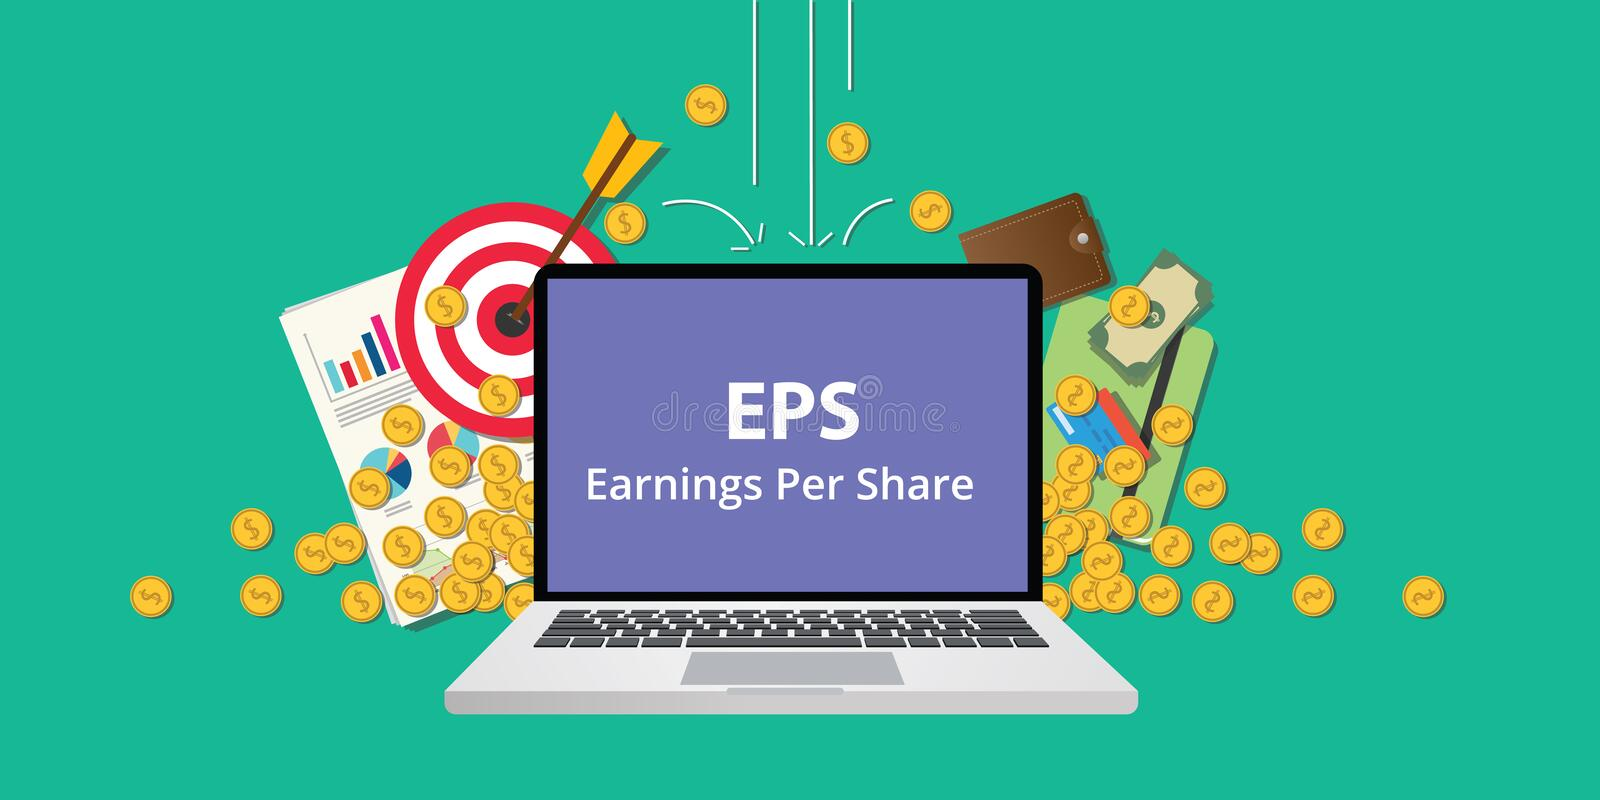 Eps earning per share stock business illustration with laptop and gold money coin goals falling from sky to reflect get stock illustration